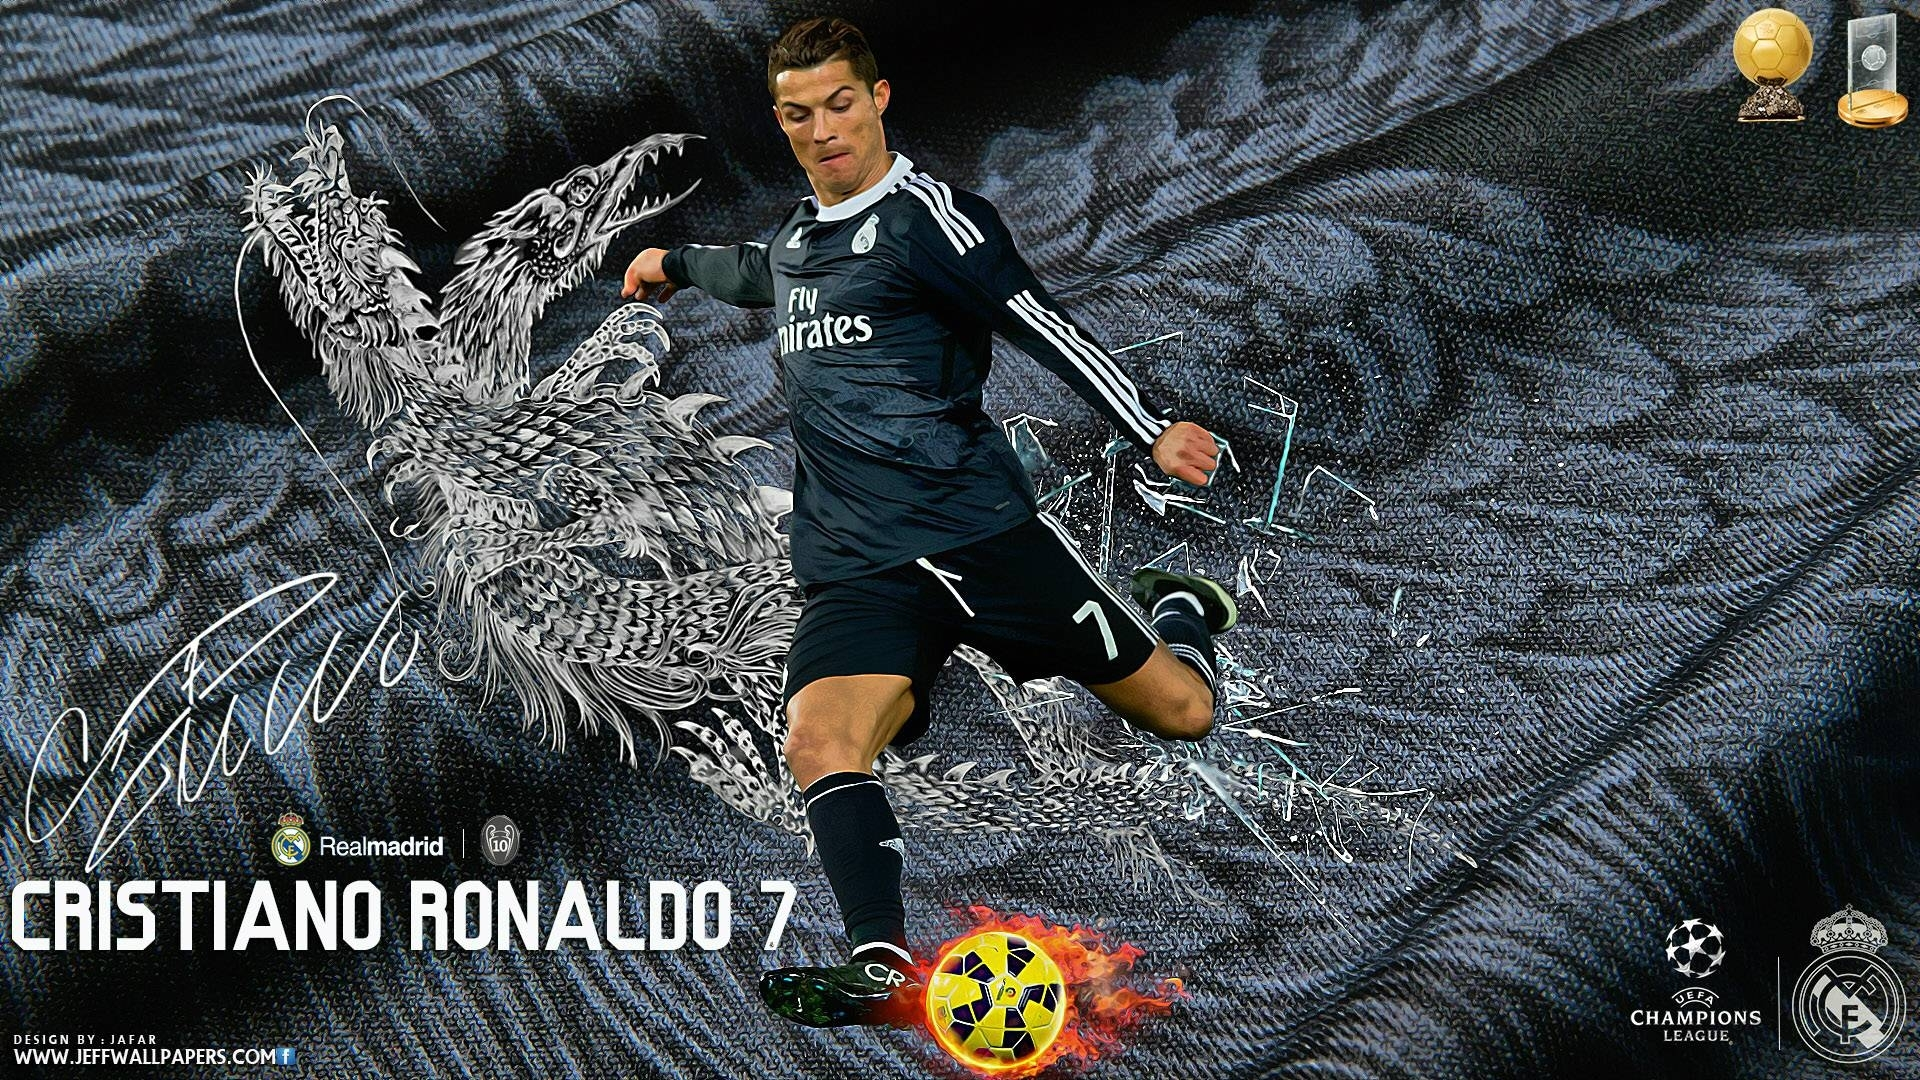 cristiano ronaldo wallpapers 2015 nike - wallpaper cave